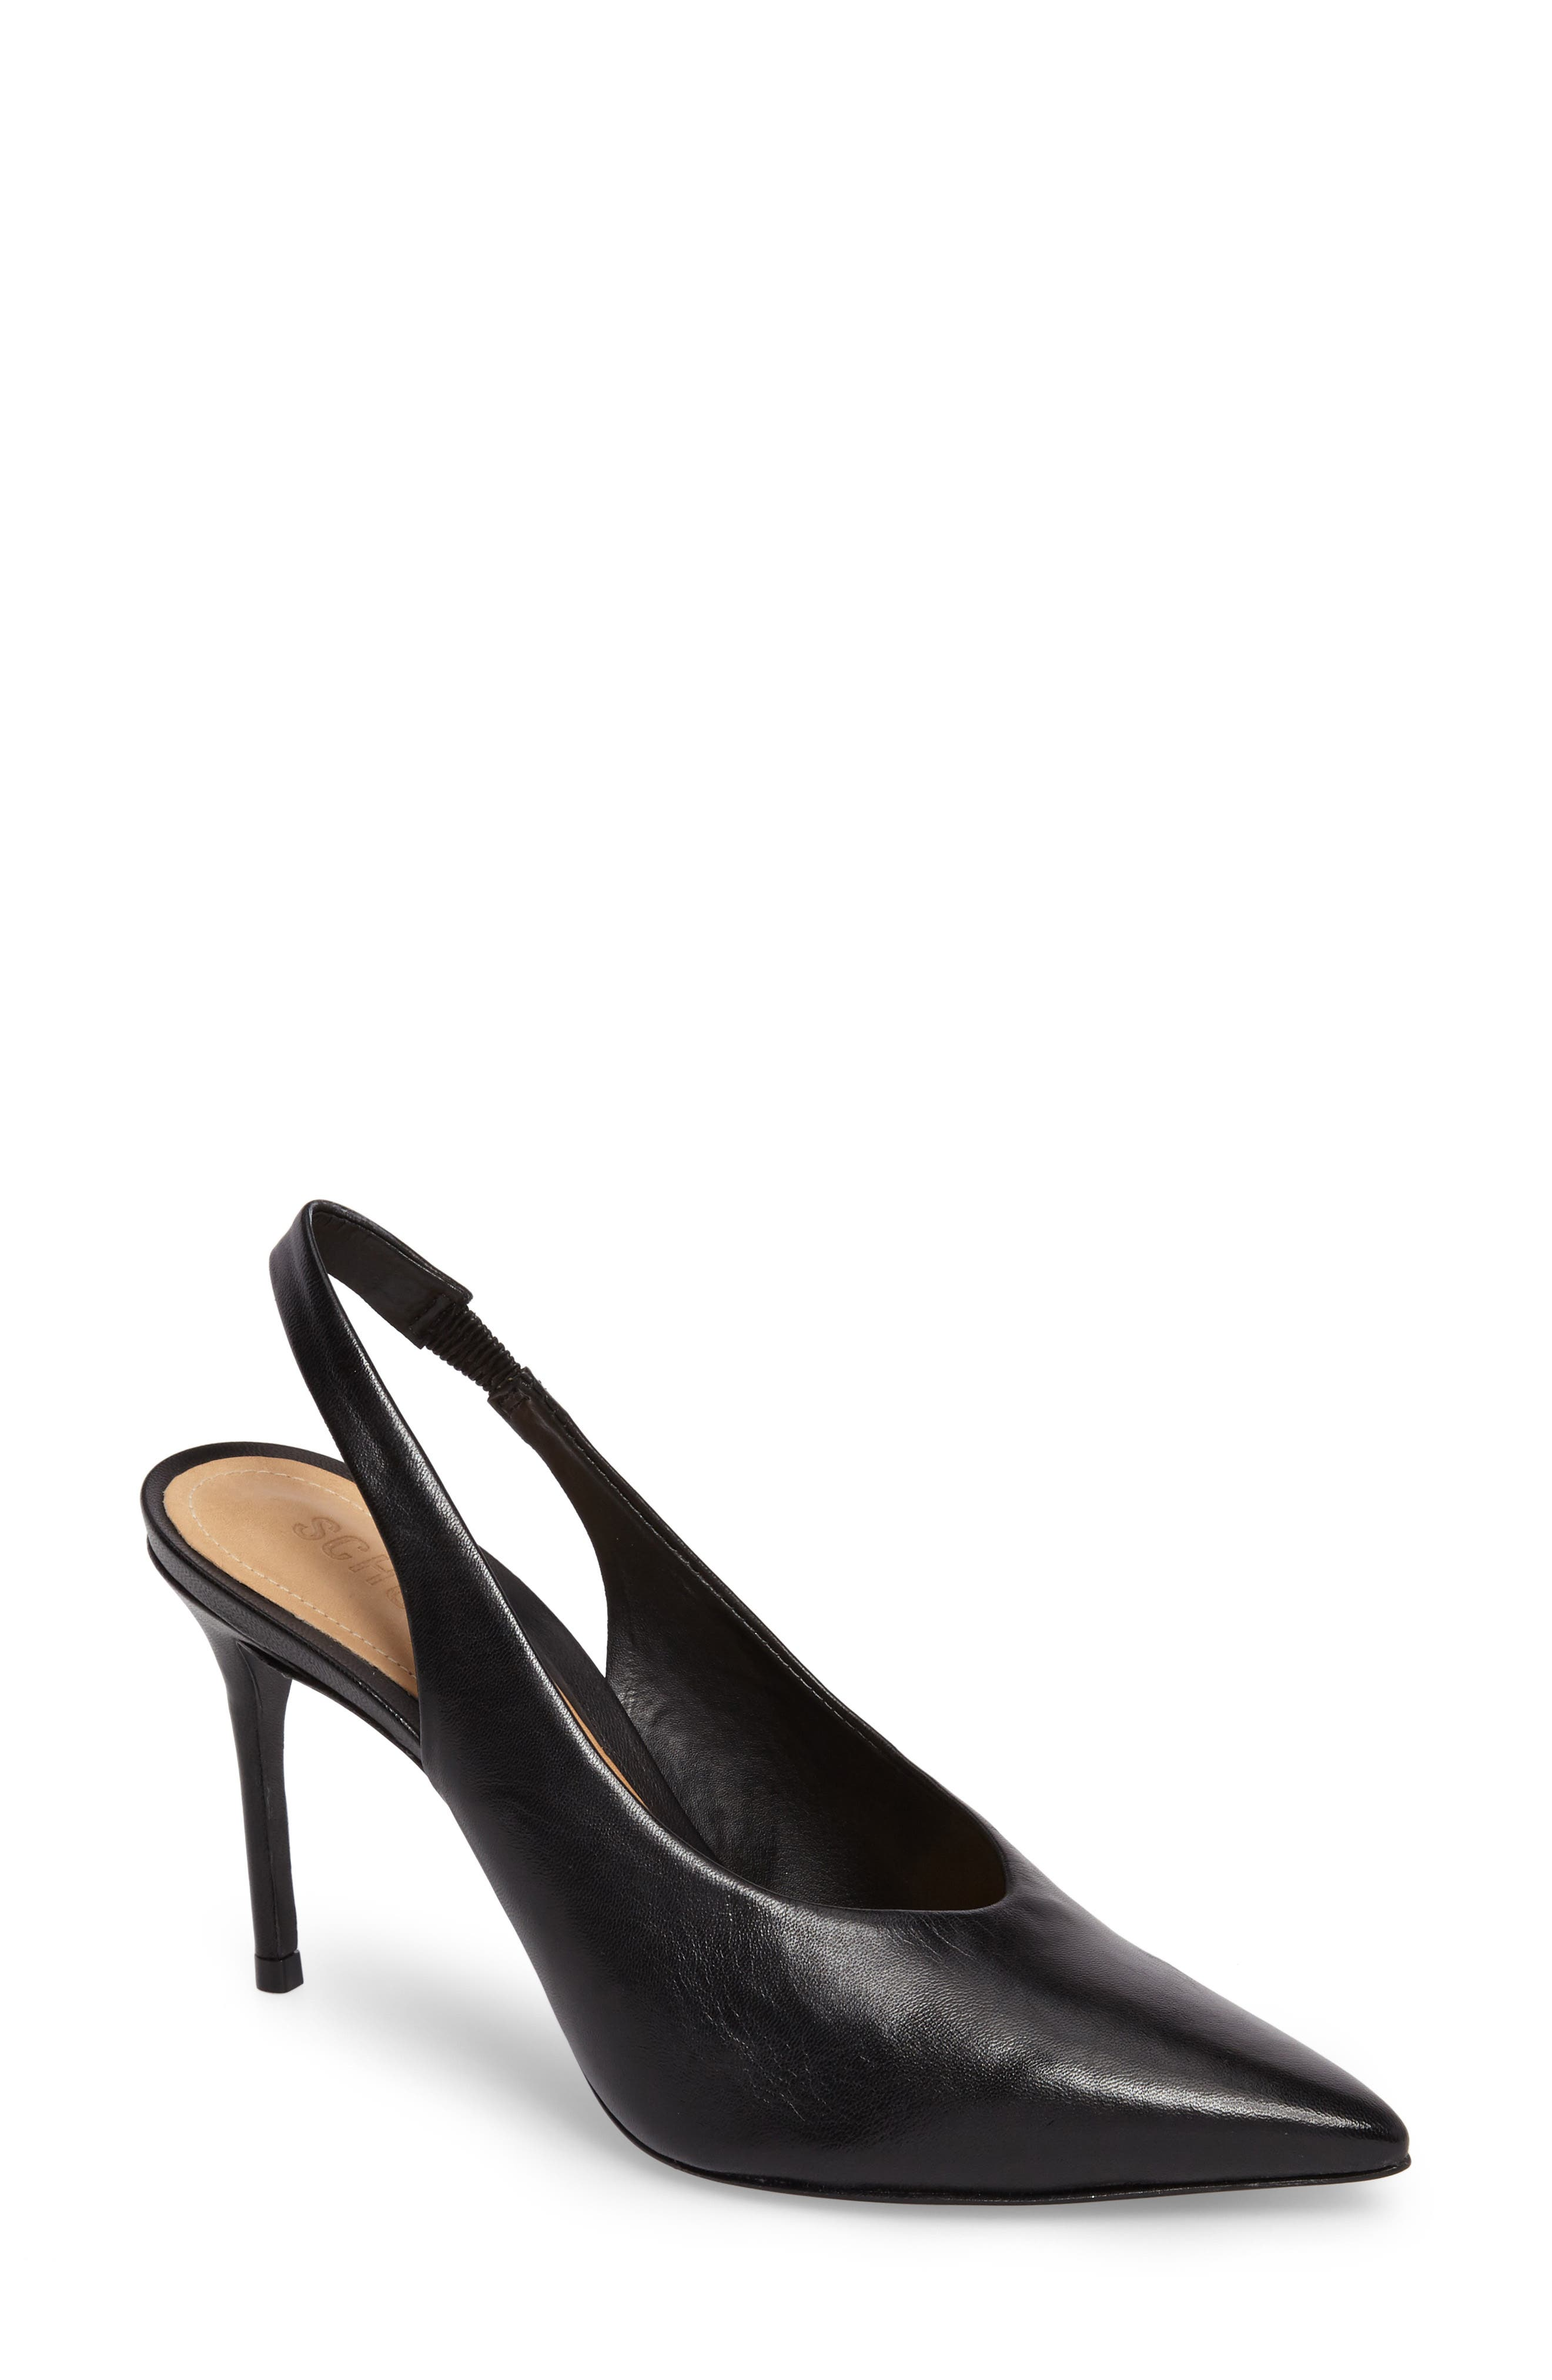 Alternate Image 1 Selected - Schutz Phisalis Slingback Pump (Women)